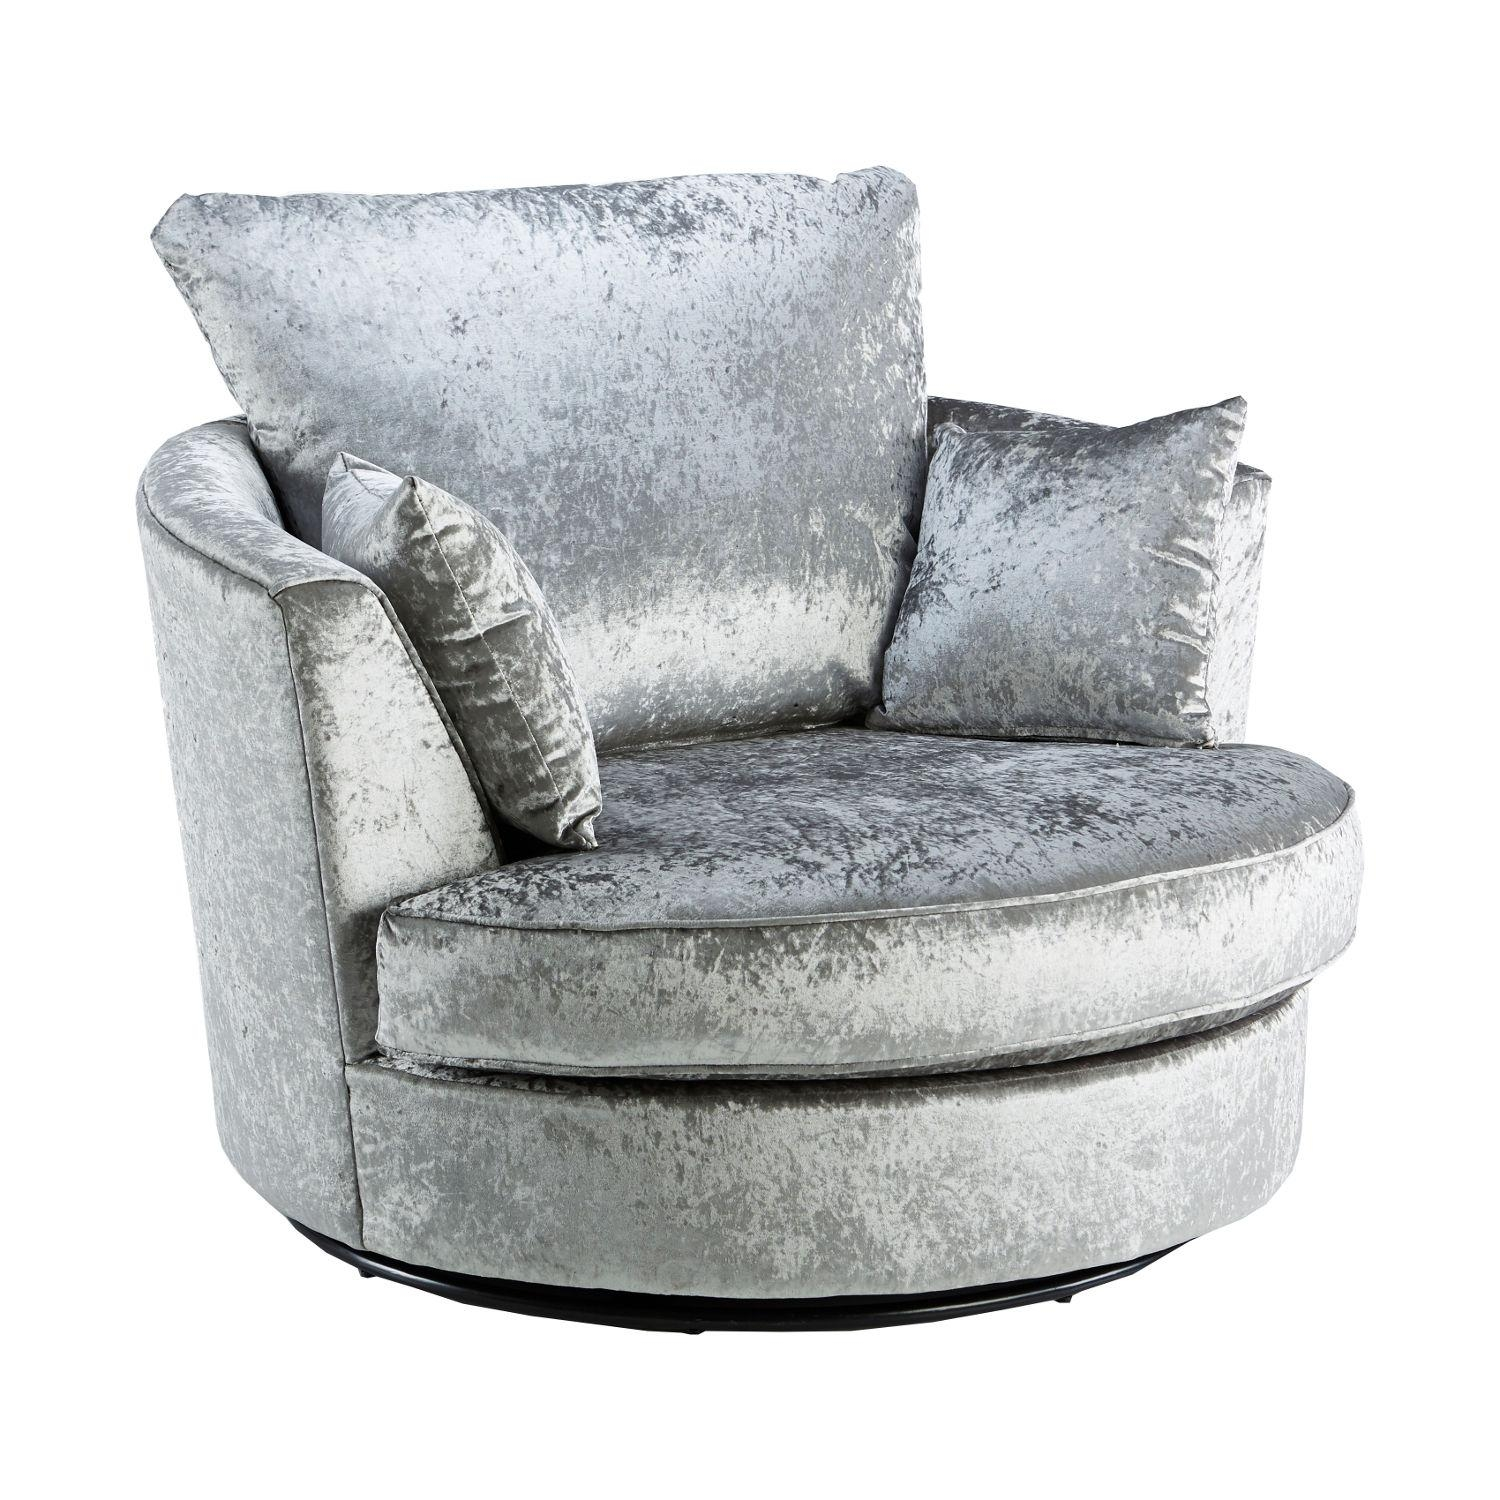 Crushed Velvet Furniture | Sofas, Beds, Chairs, Cushions Regarding Spinning Sofa Chairs (View 10 of 20)